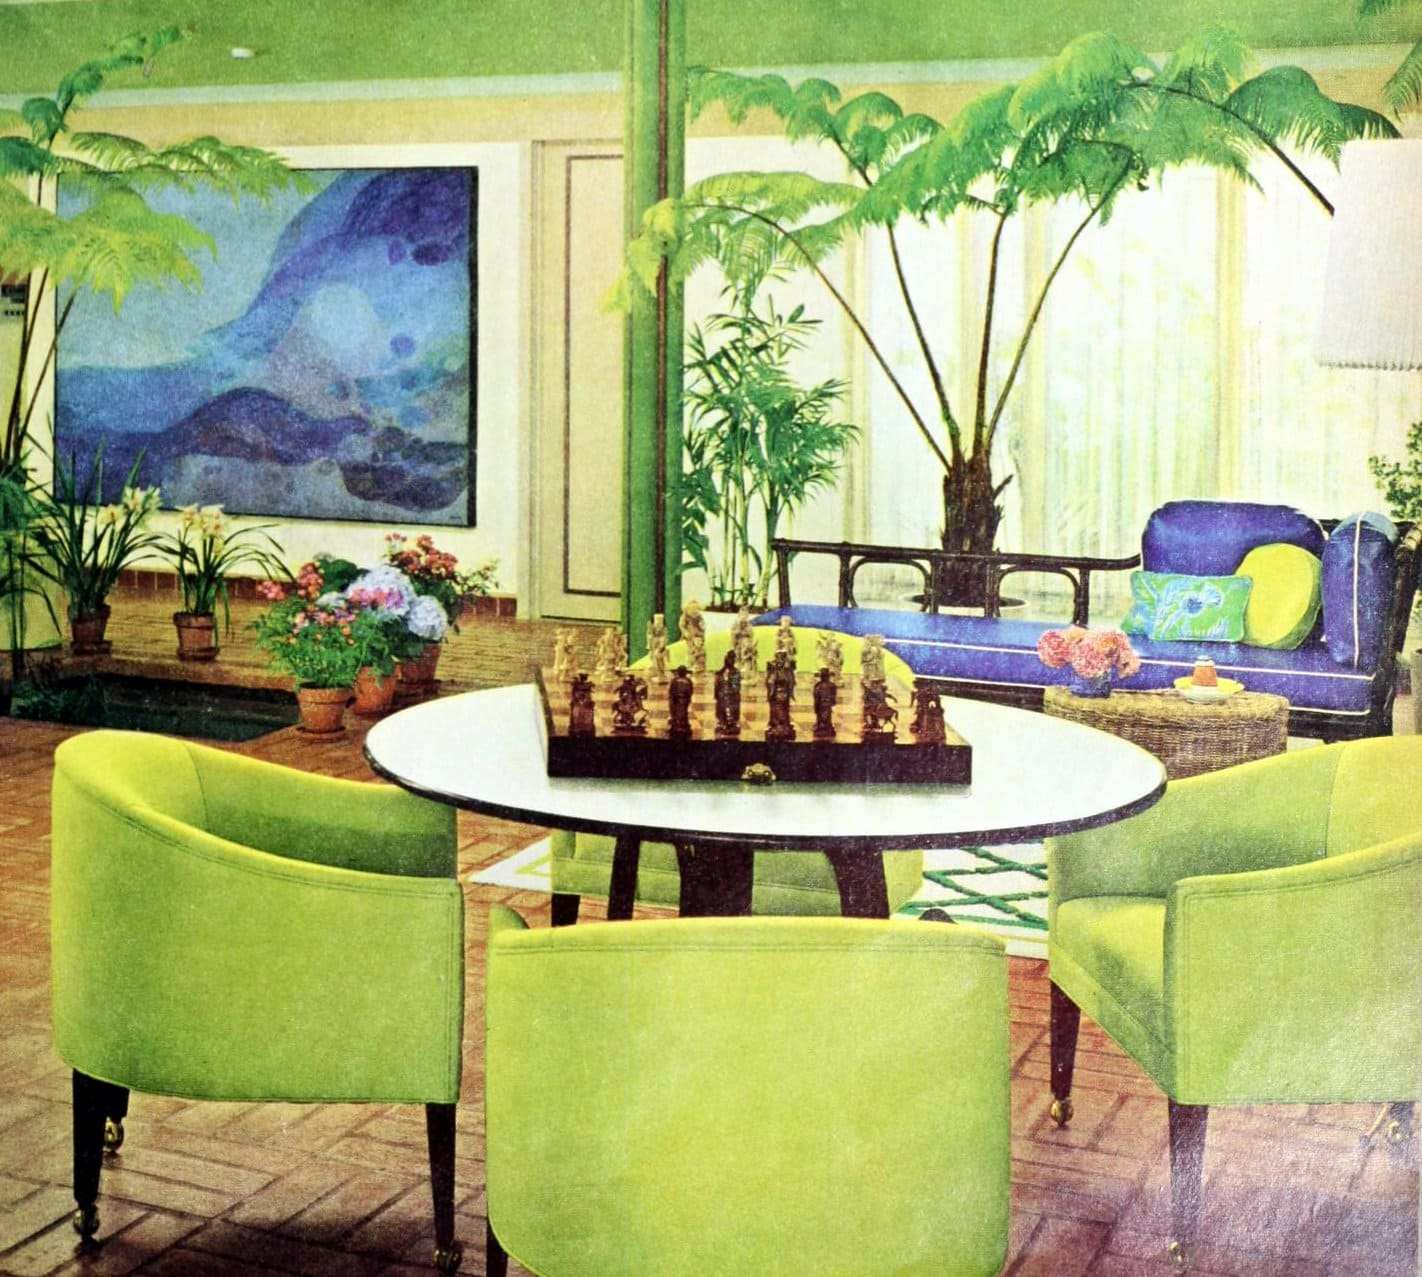 Round green barrel-style chairs at a game table - Retro sixties home decor